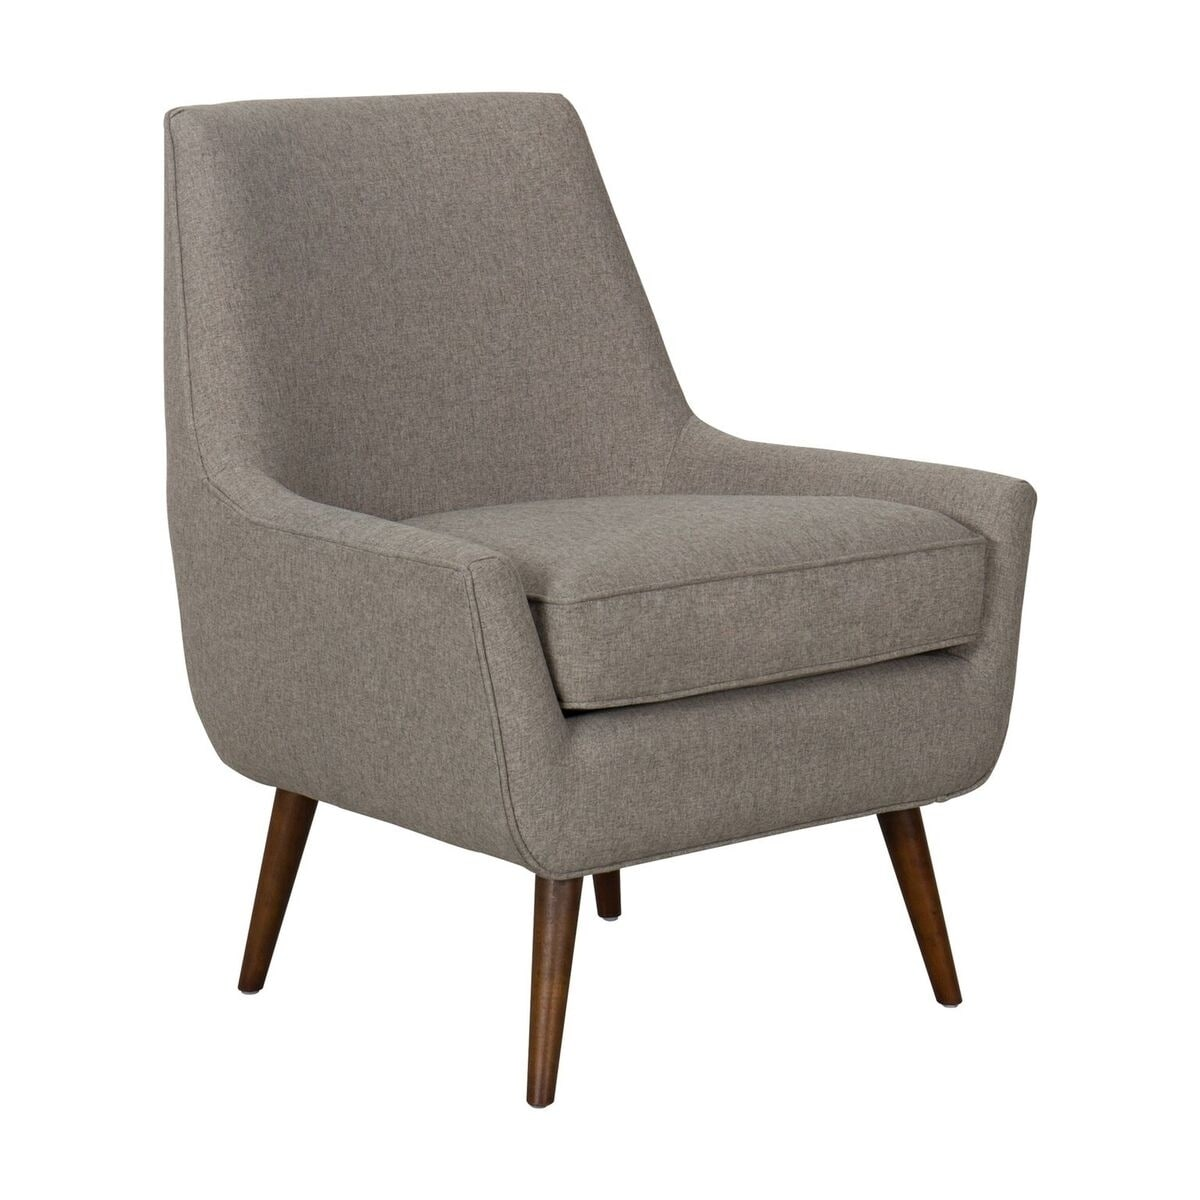 Shop homepop dean modern accent chair with ottoman light brown on sale free shipping today overstock com 20980505